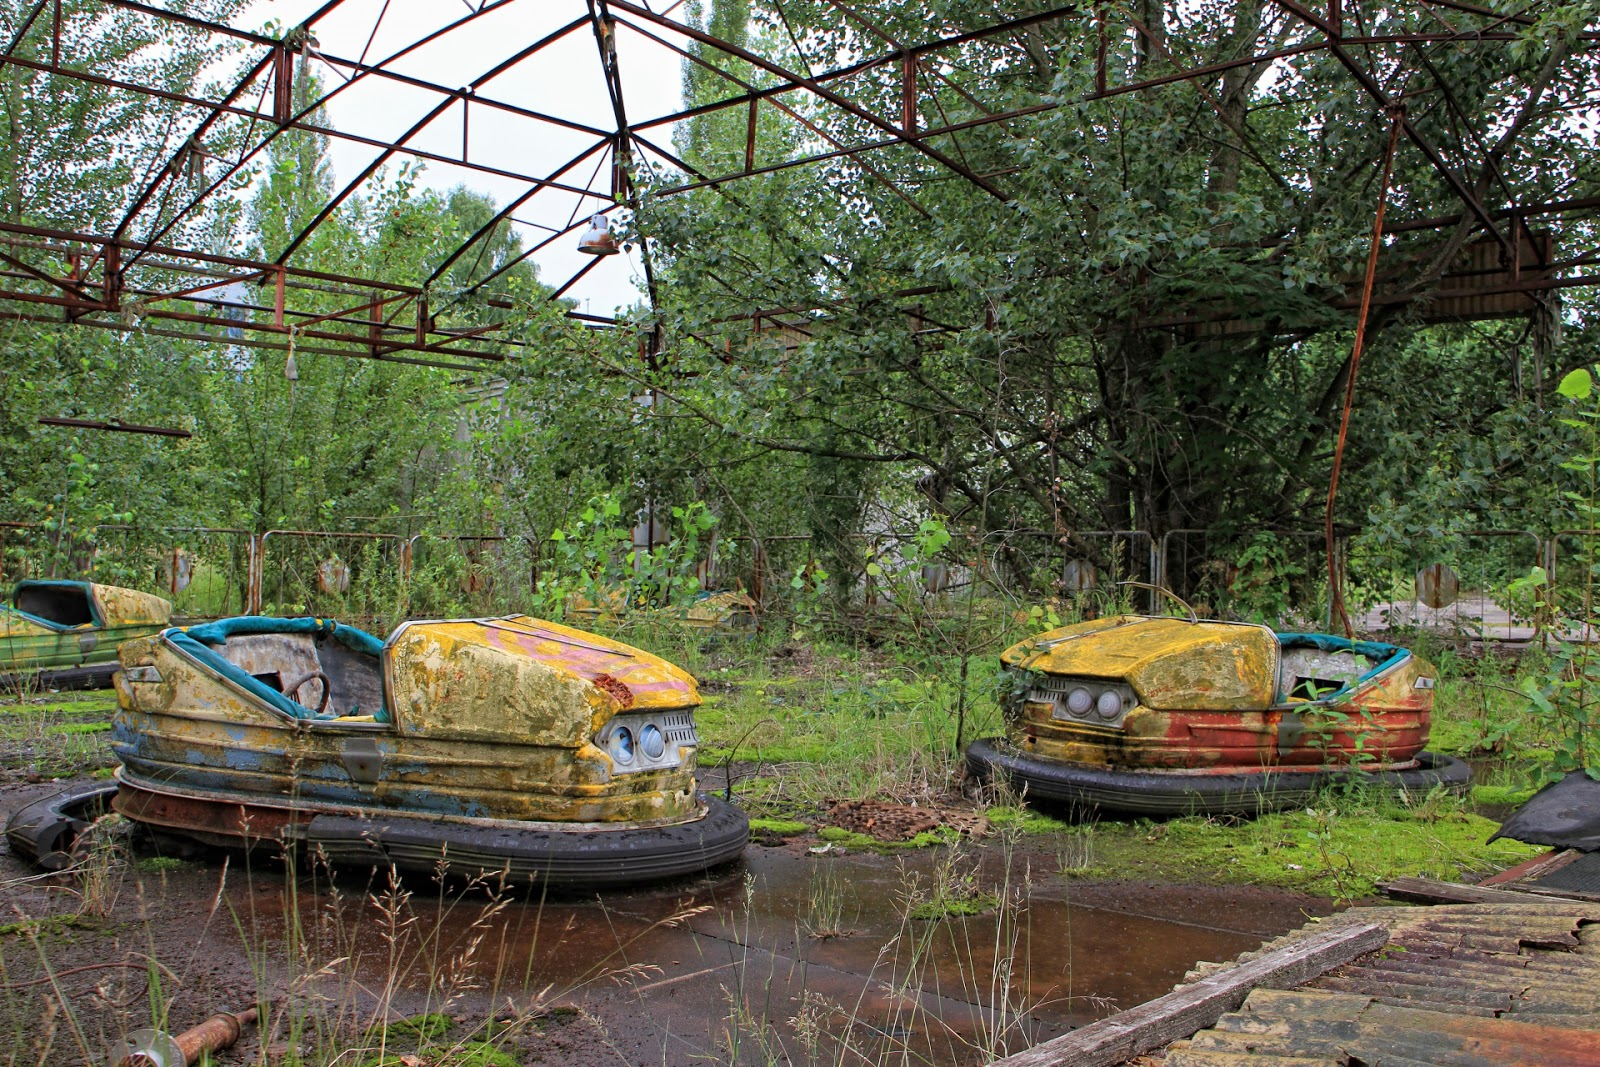 The Ghost Town of Pripyat.